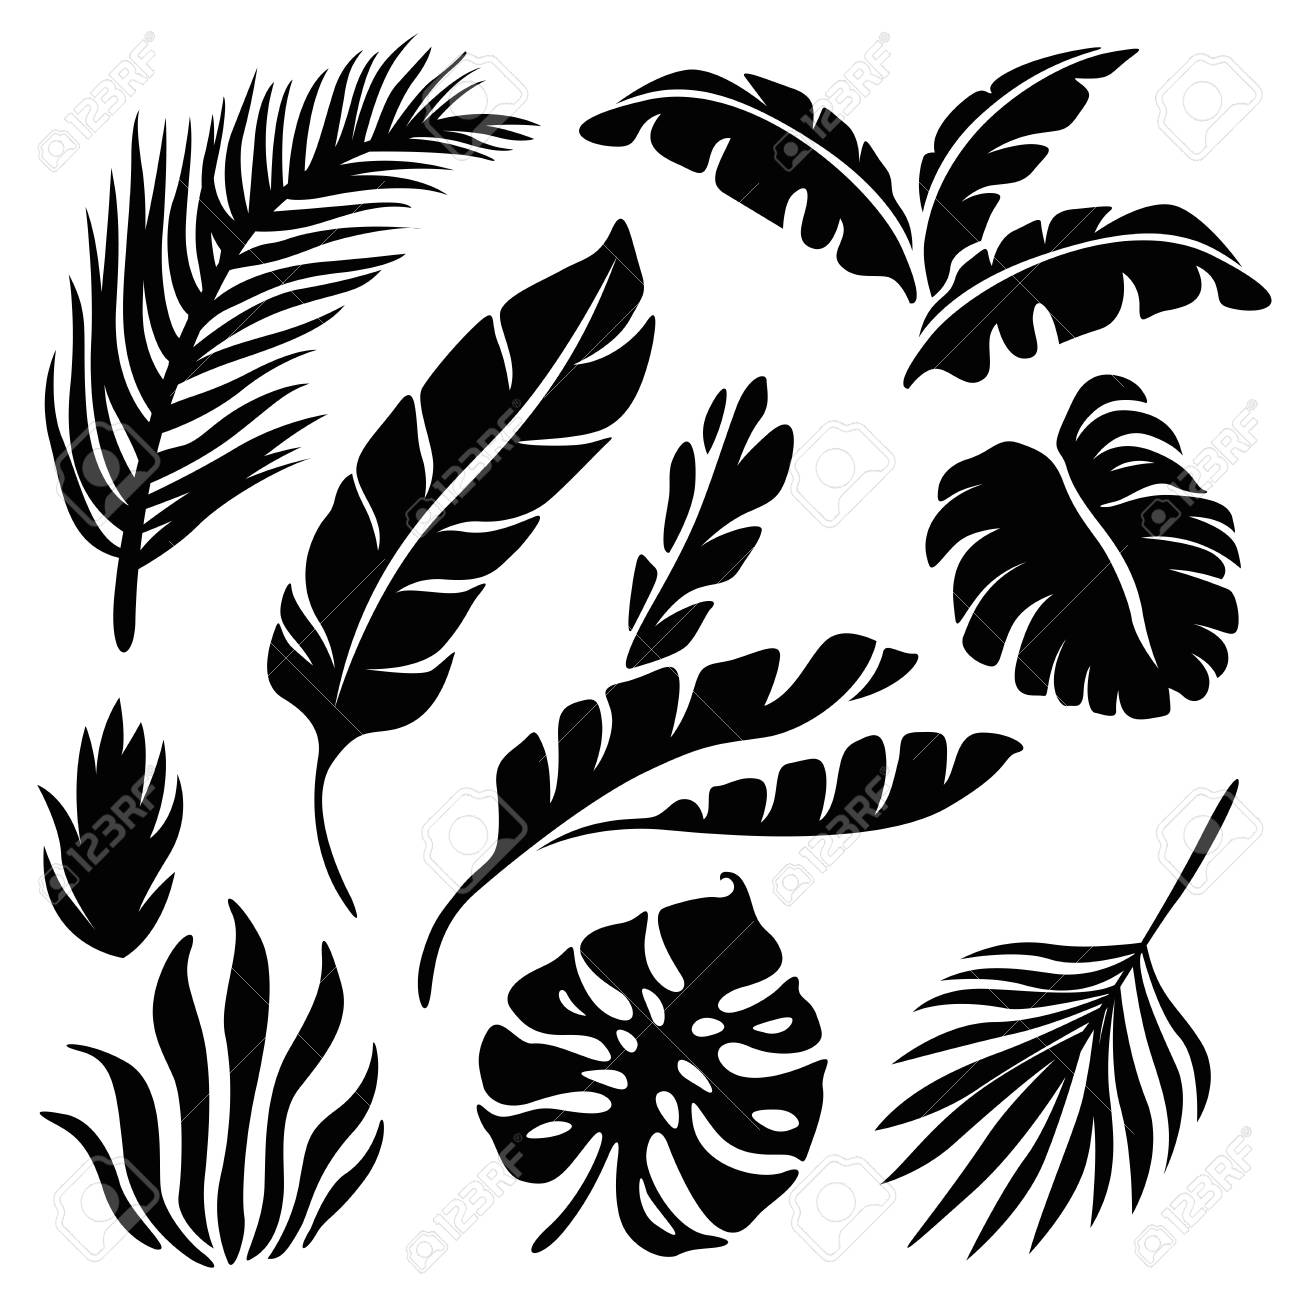 Tropical Leaves Silhouette Set Isolated On A White Background Royalty Free Cliparts Vectors And Stock Illustration Image 107412275 Pikbest has 3796 tropical leaves design images templates for free. tropical leaves silhouette set isolated on a white background